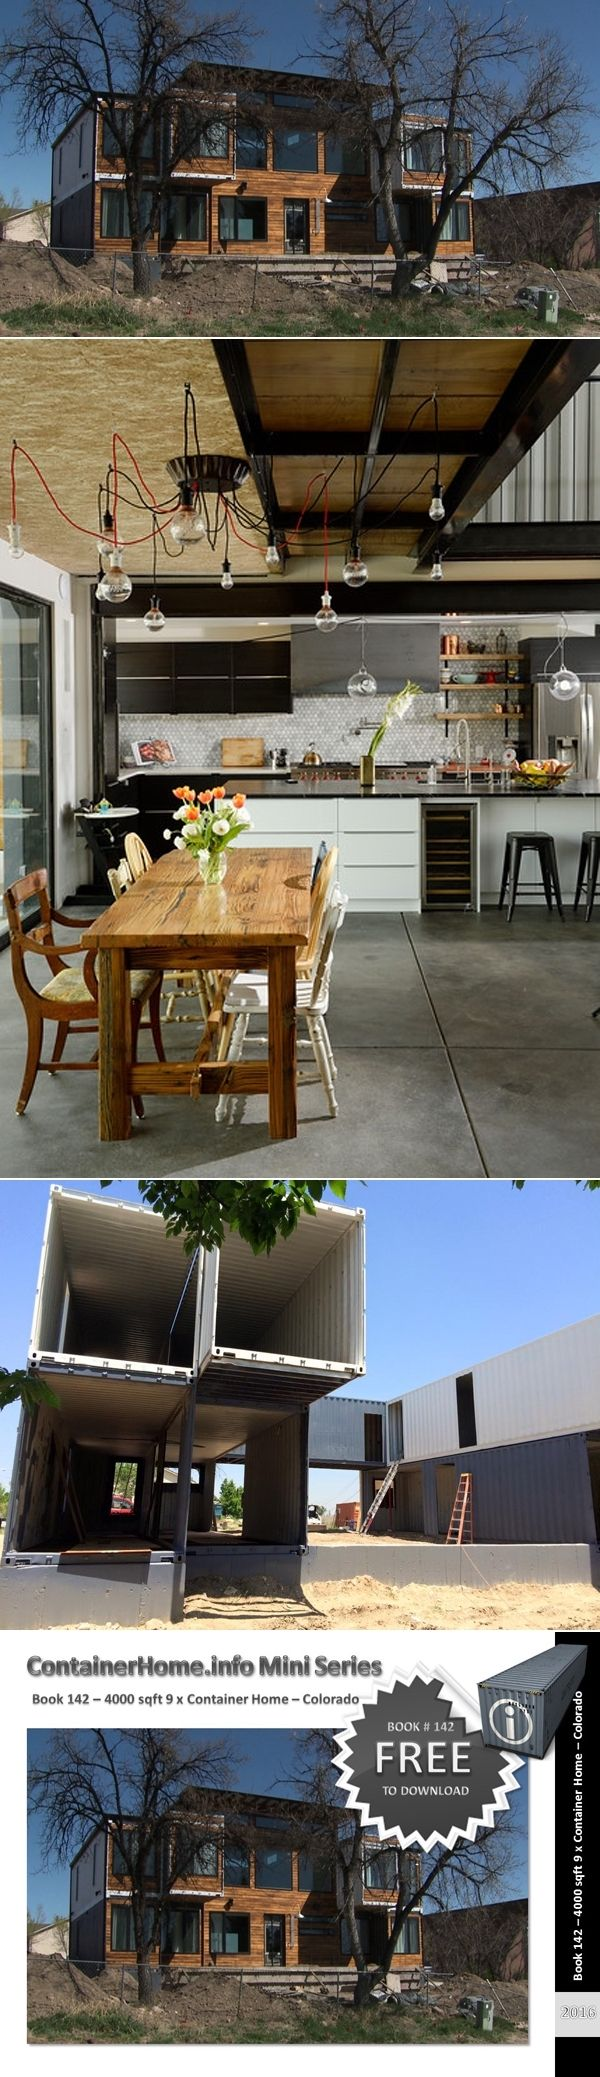 House design build your own - Cargo Container Buildings